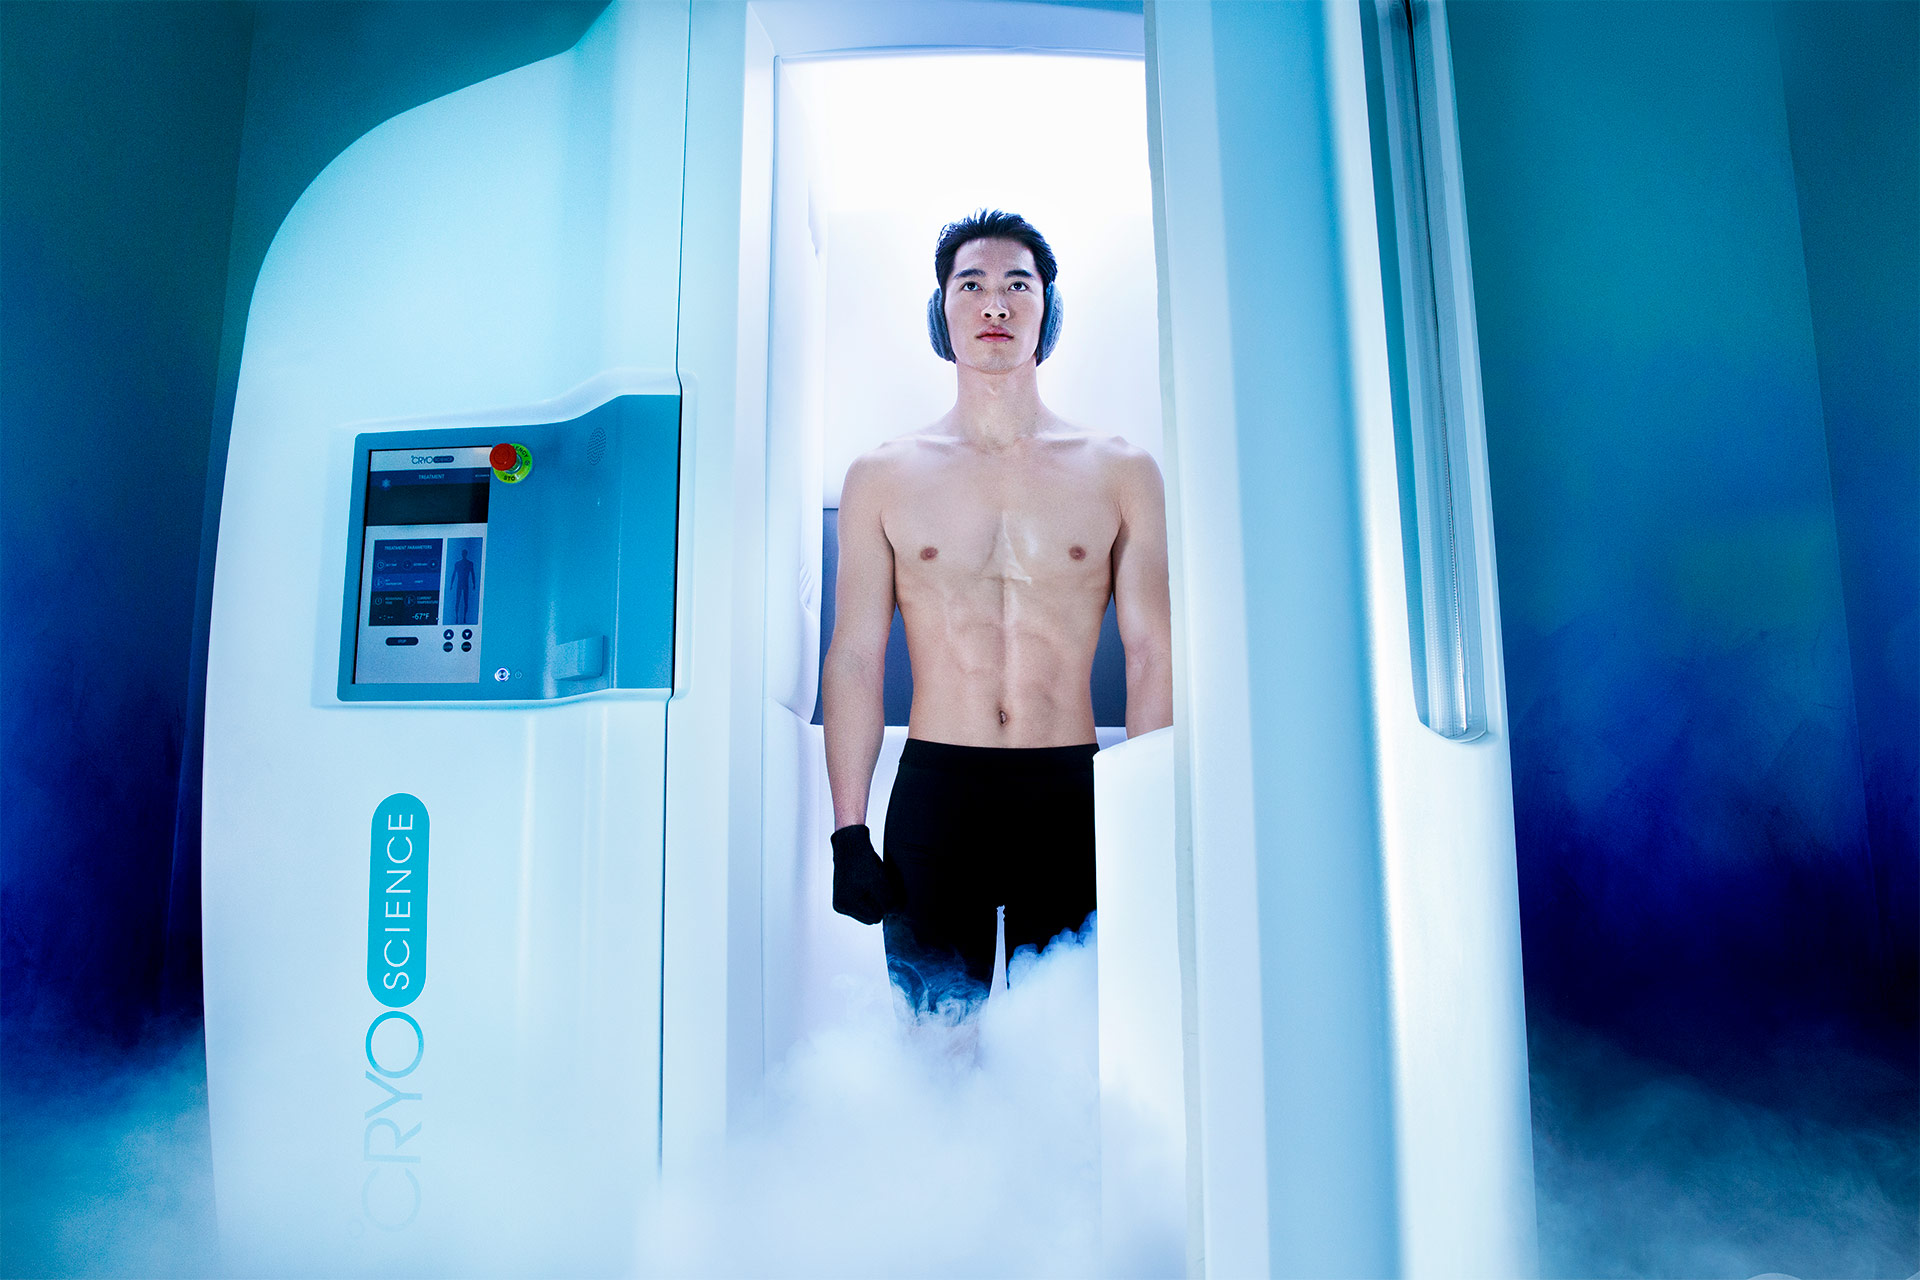 A shirtless man standing inside a white capsule with smoke surrounding